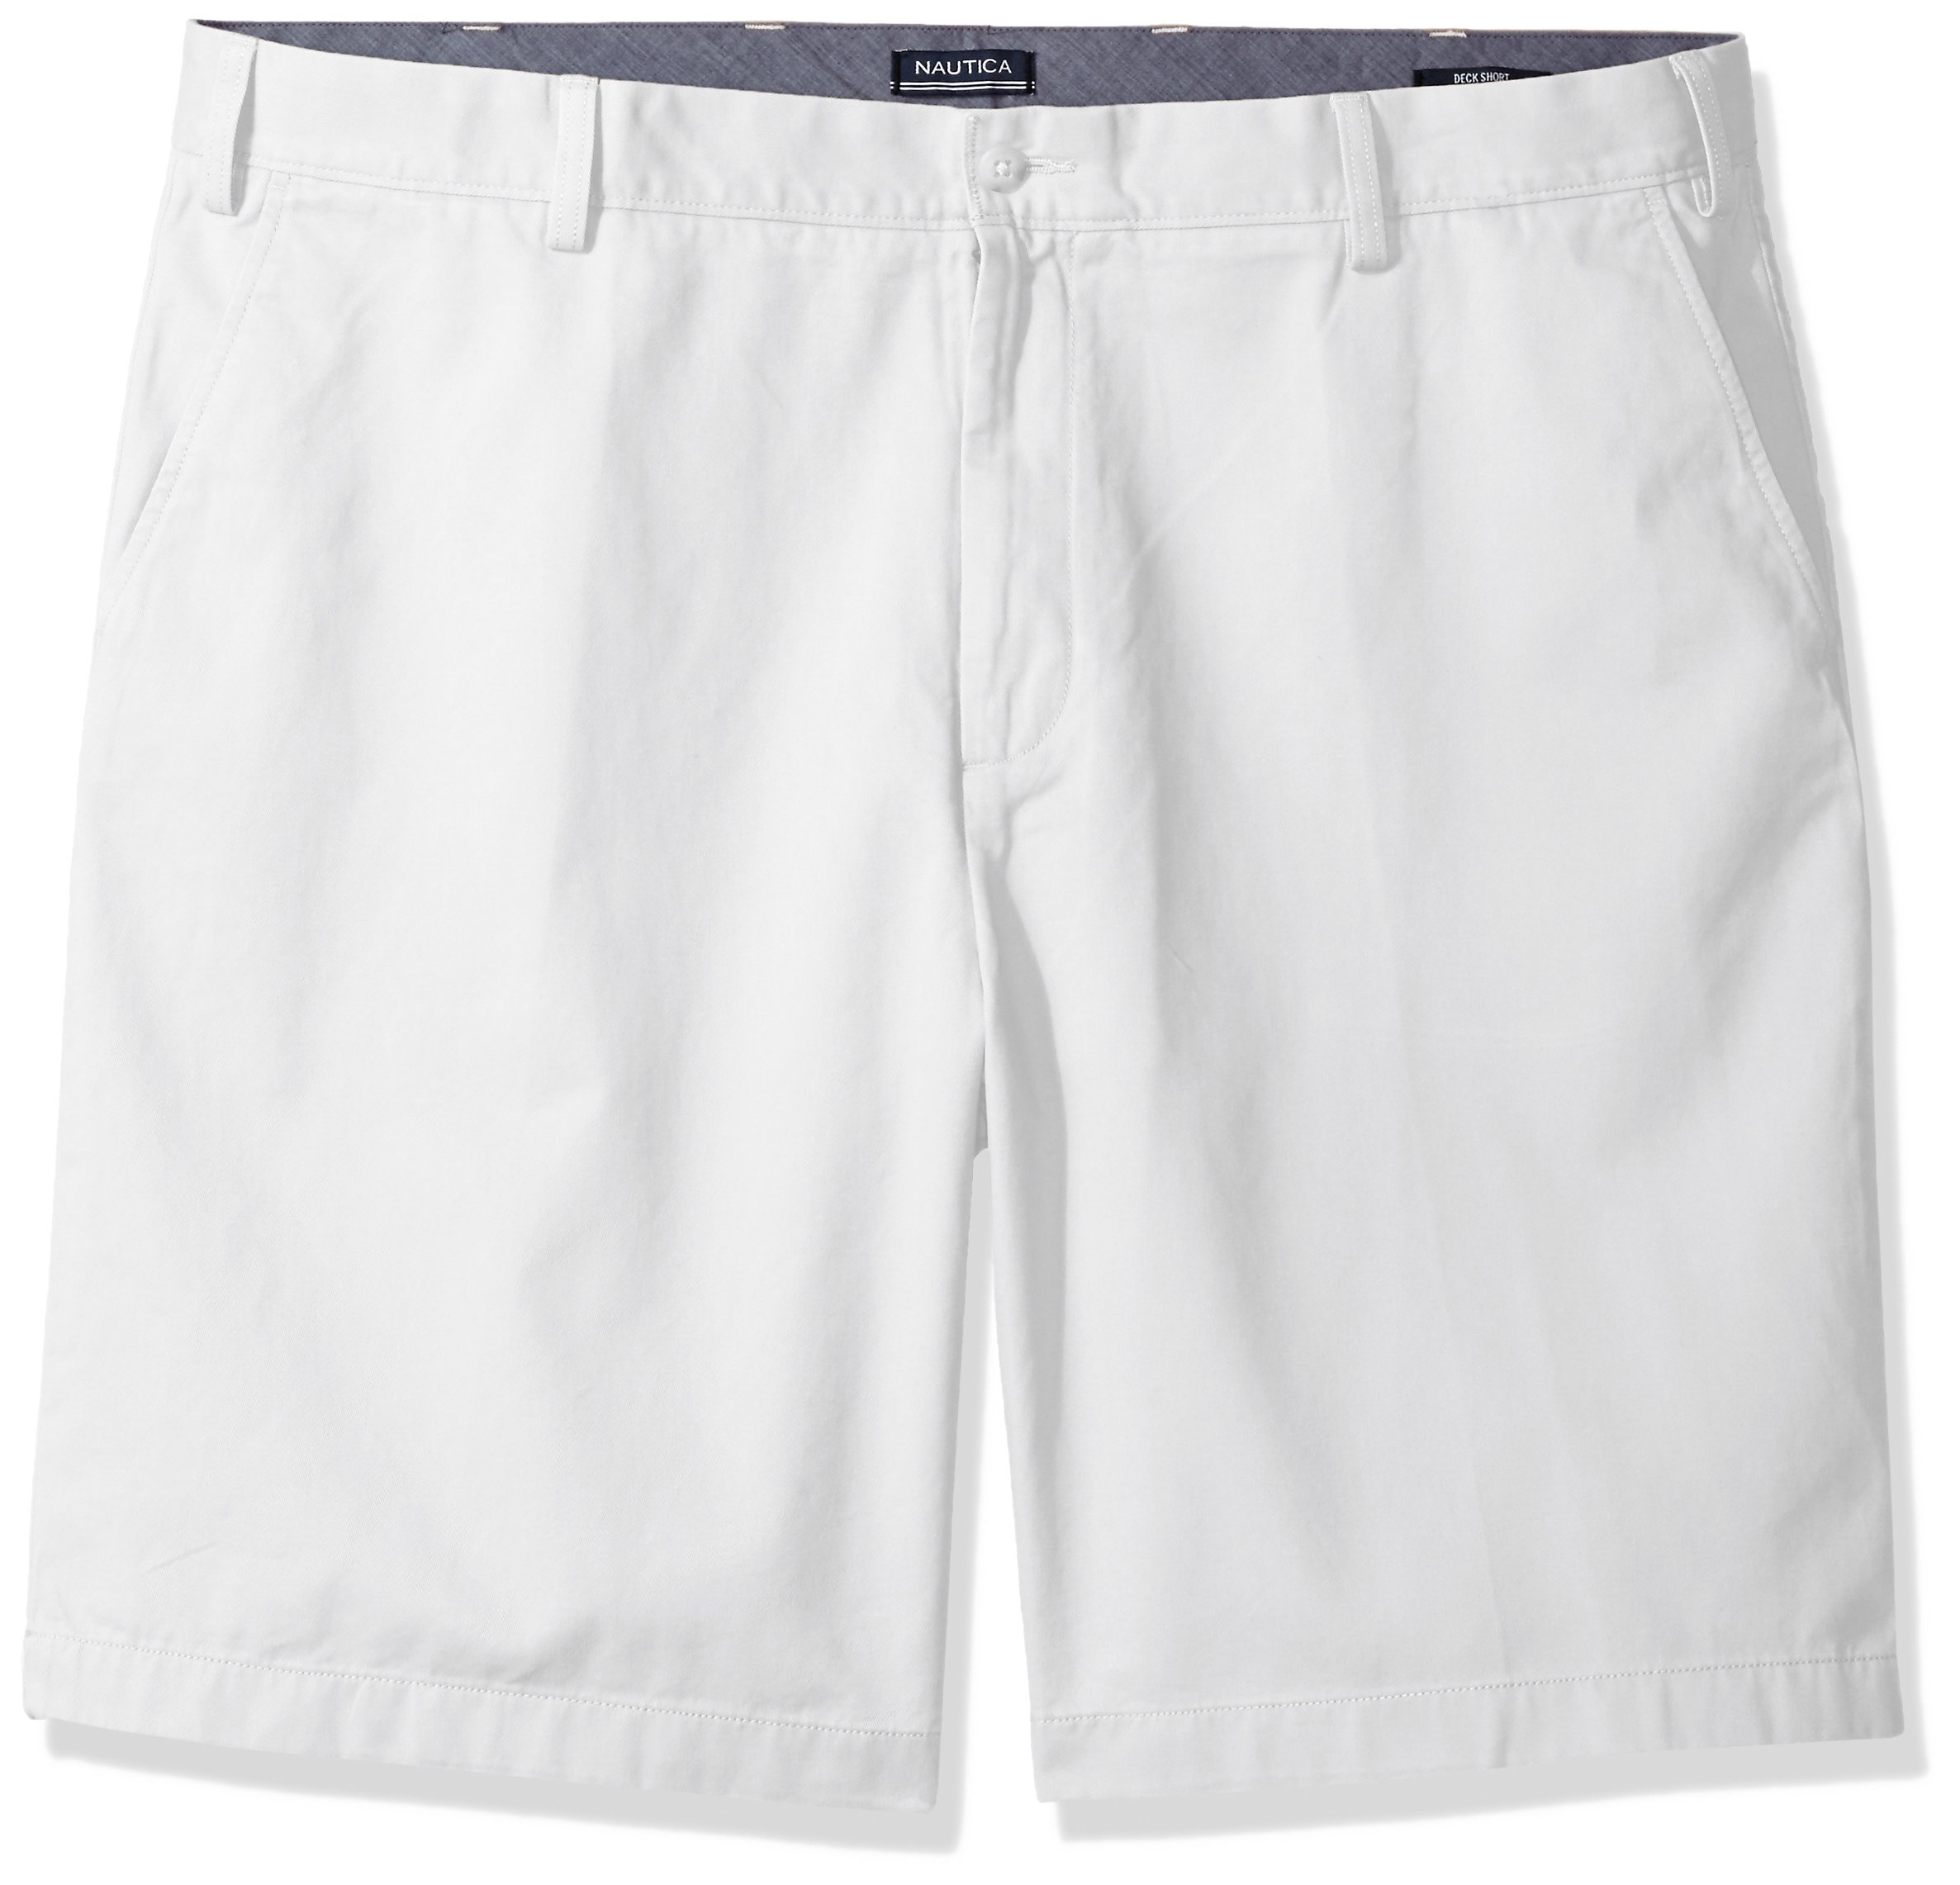 Nautica Men's Big and Tall Cotton Twill Flat Front Chino Deck Short-C92110, Bright White, 48W